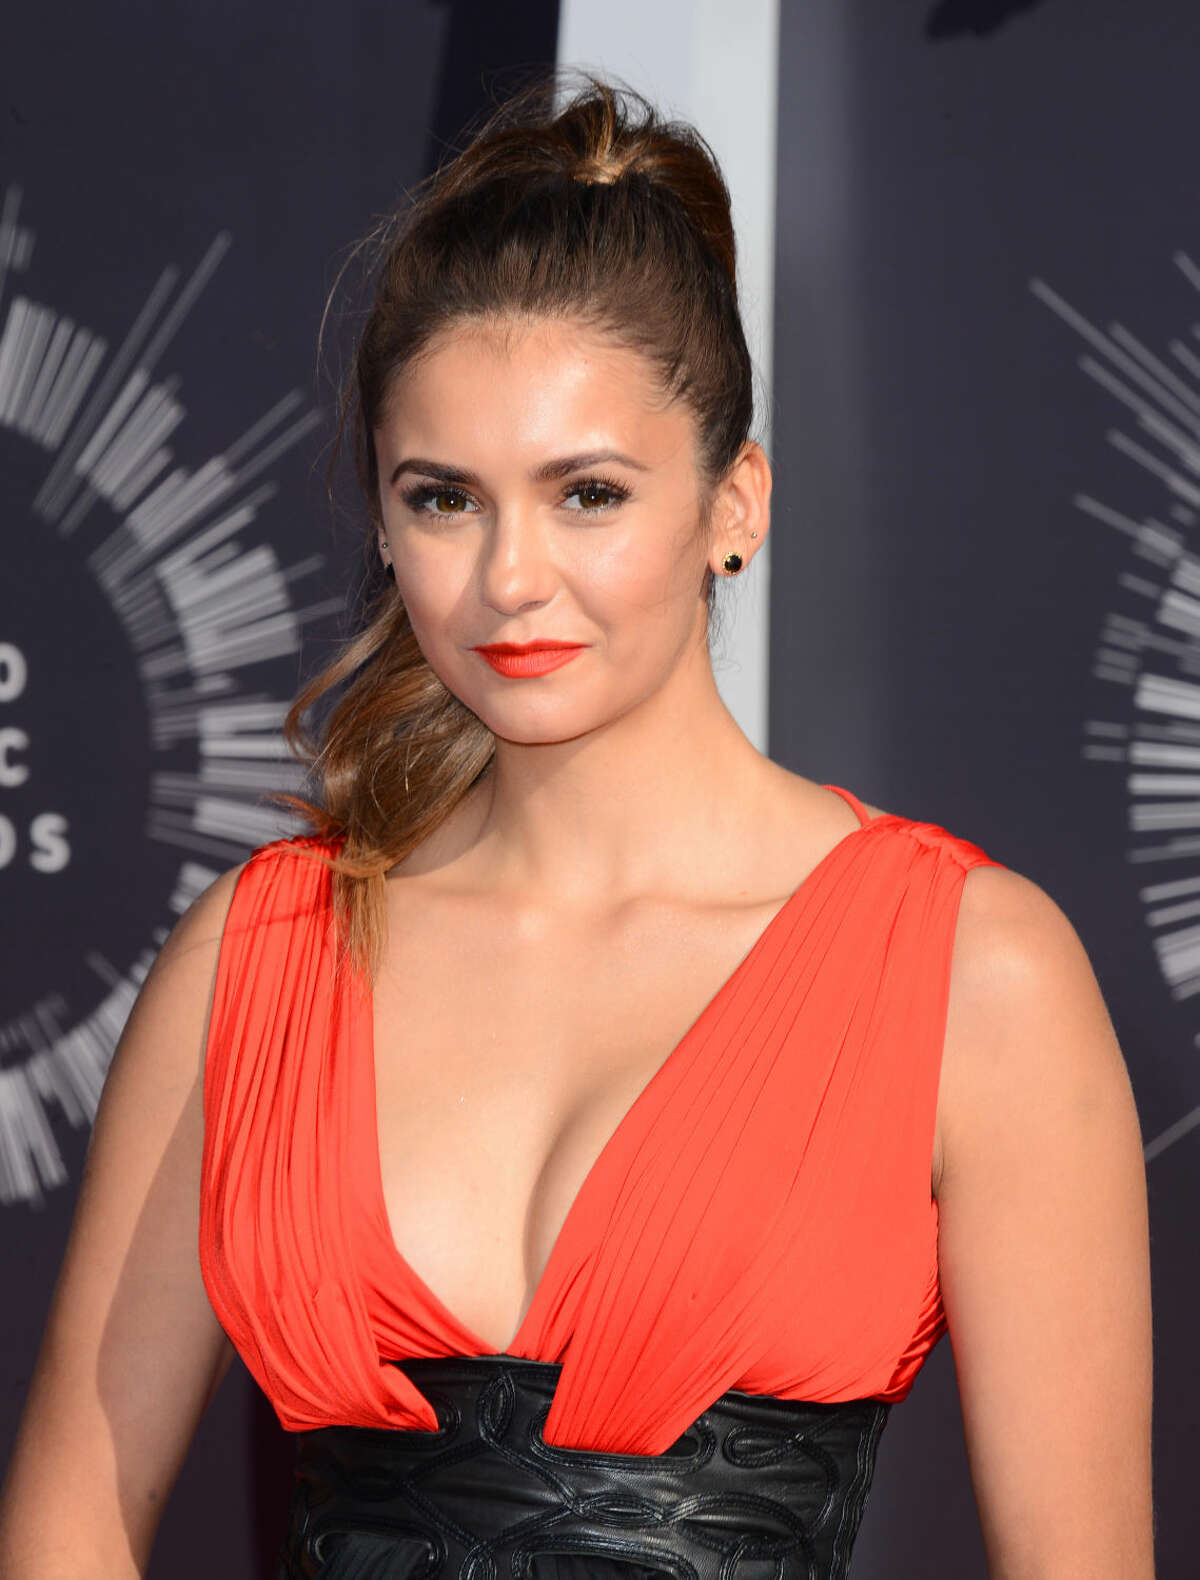 Nina Dobrev arrives at the MTV Video Music Awards at The Forum on Sunday, Aug. 24, 2014, in Inglewood, Calif. (Photo by Jordan Strauss/Invision/AP)